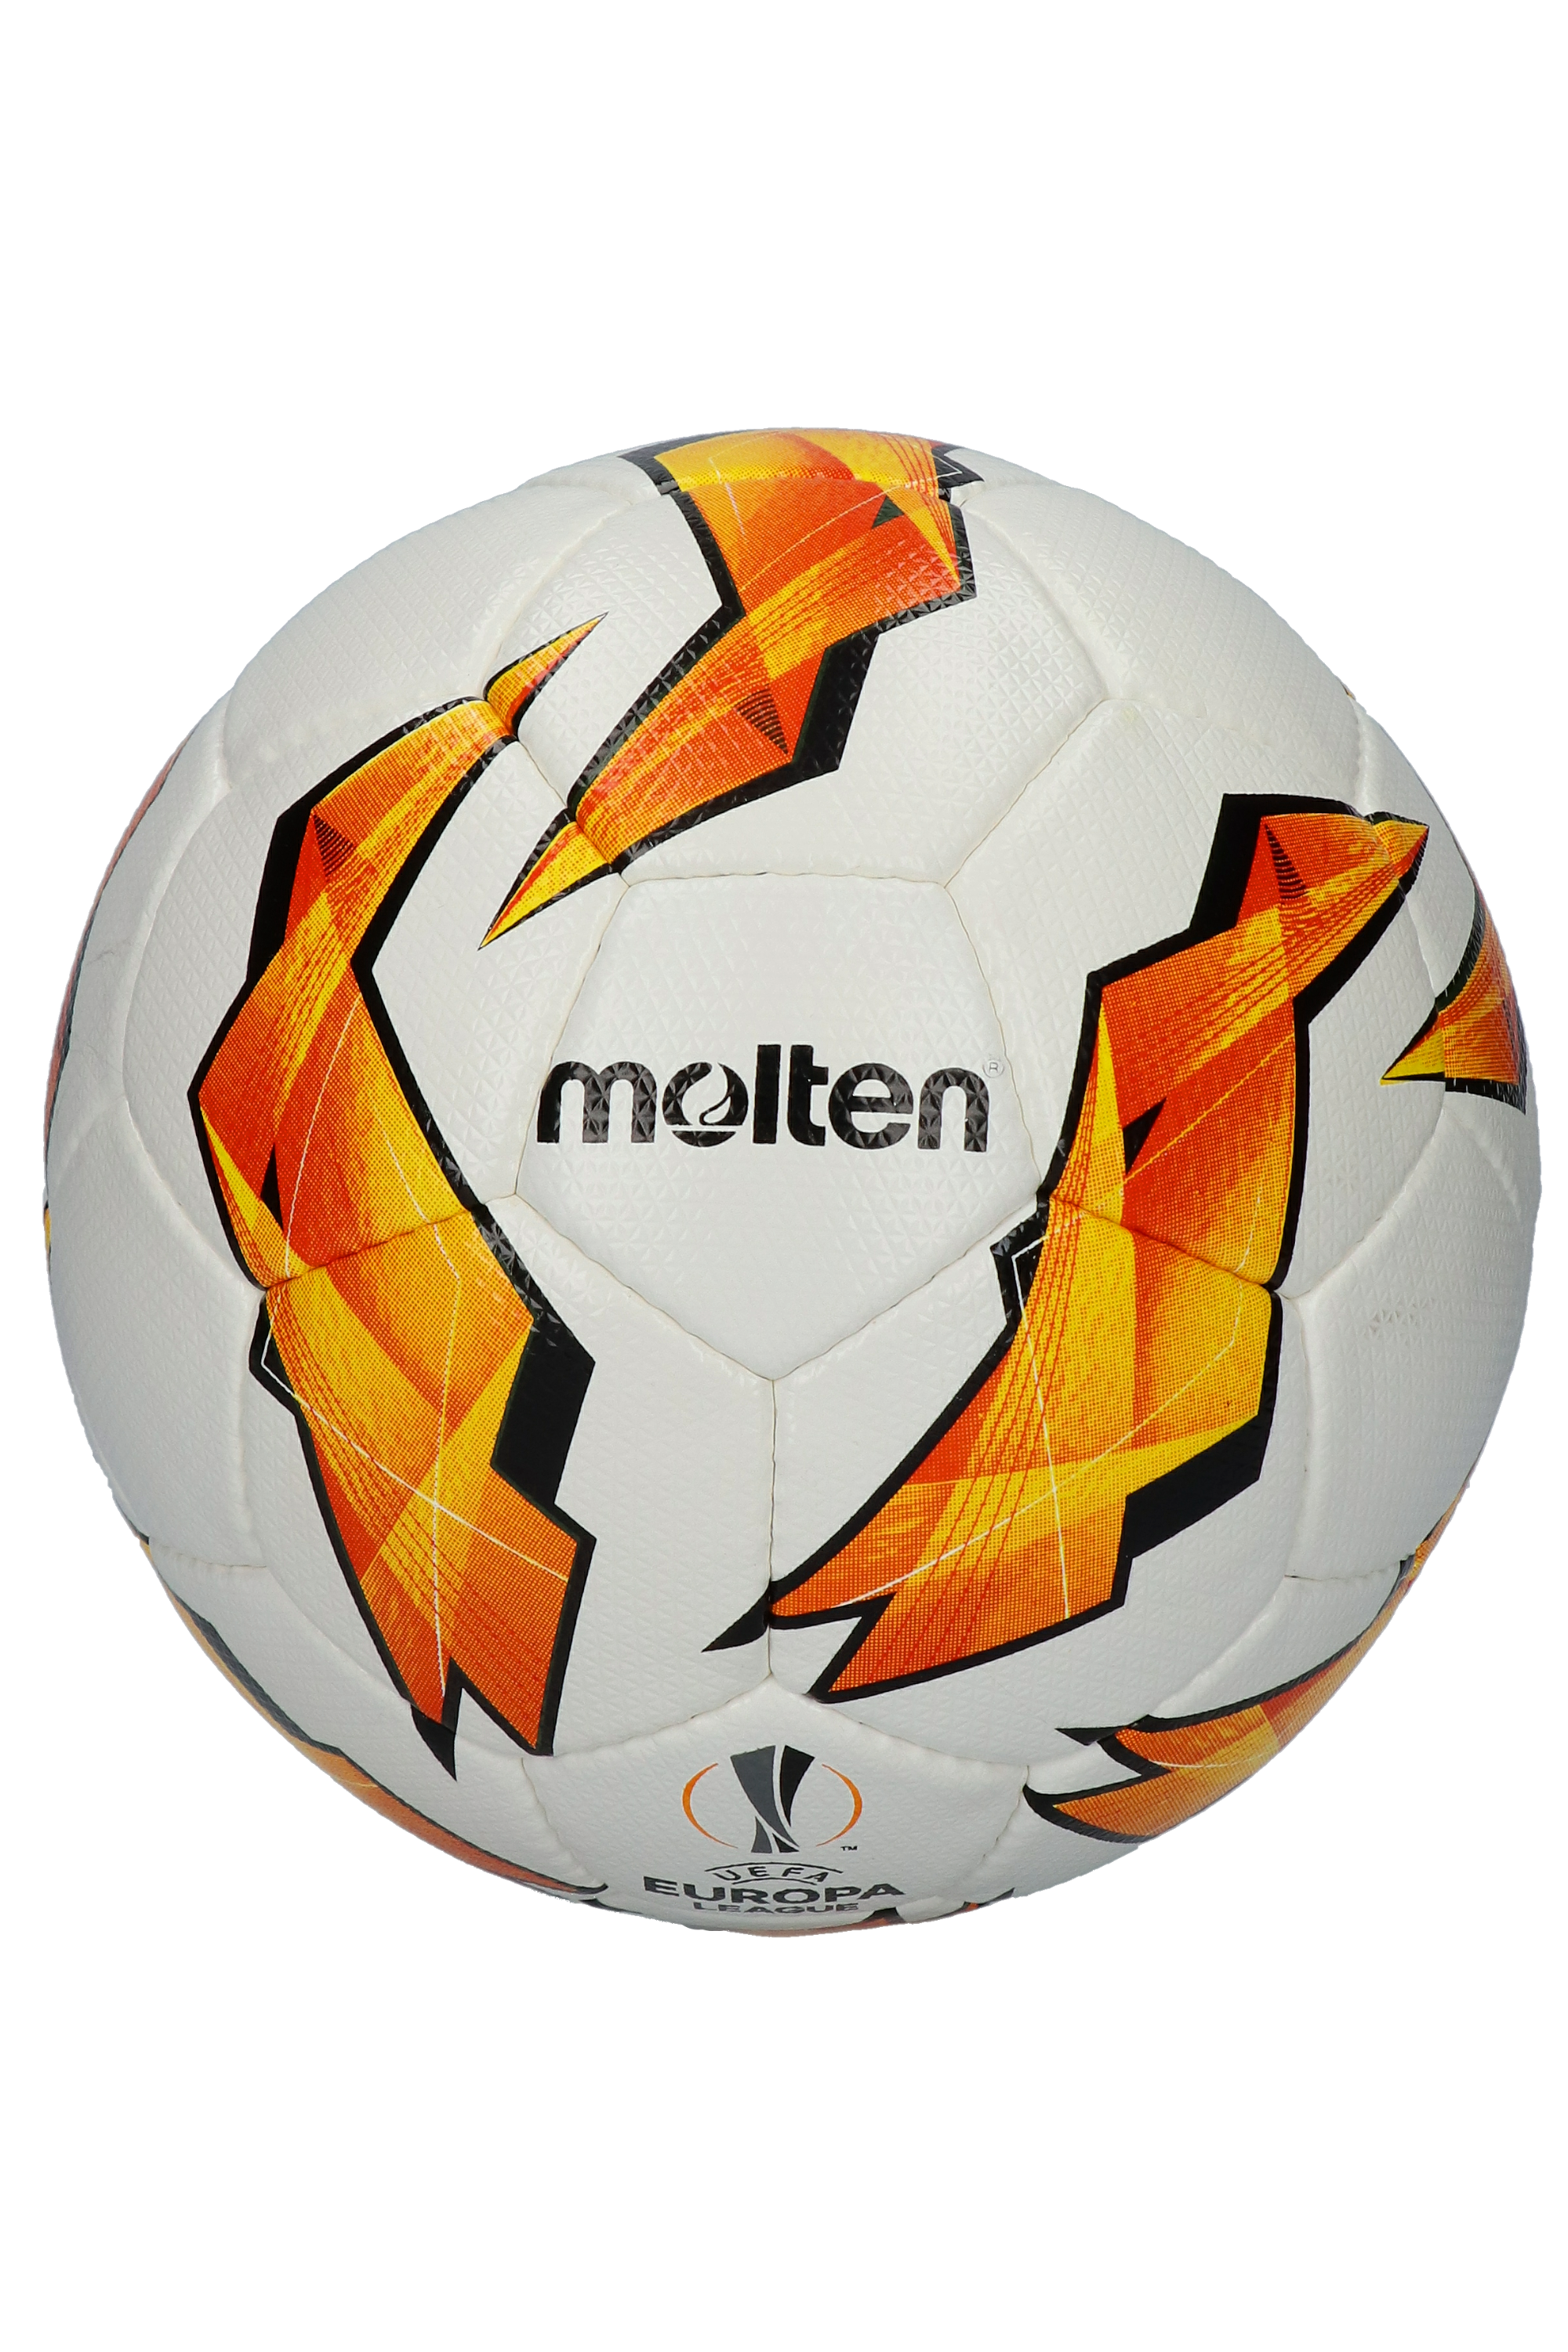 ball pilka molten uefa europa league replica size 5 r gol com football boots equipment ball pilka molten uefa europa league replica size 5